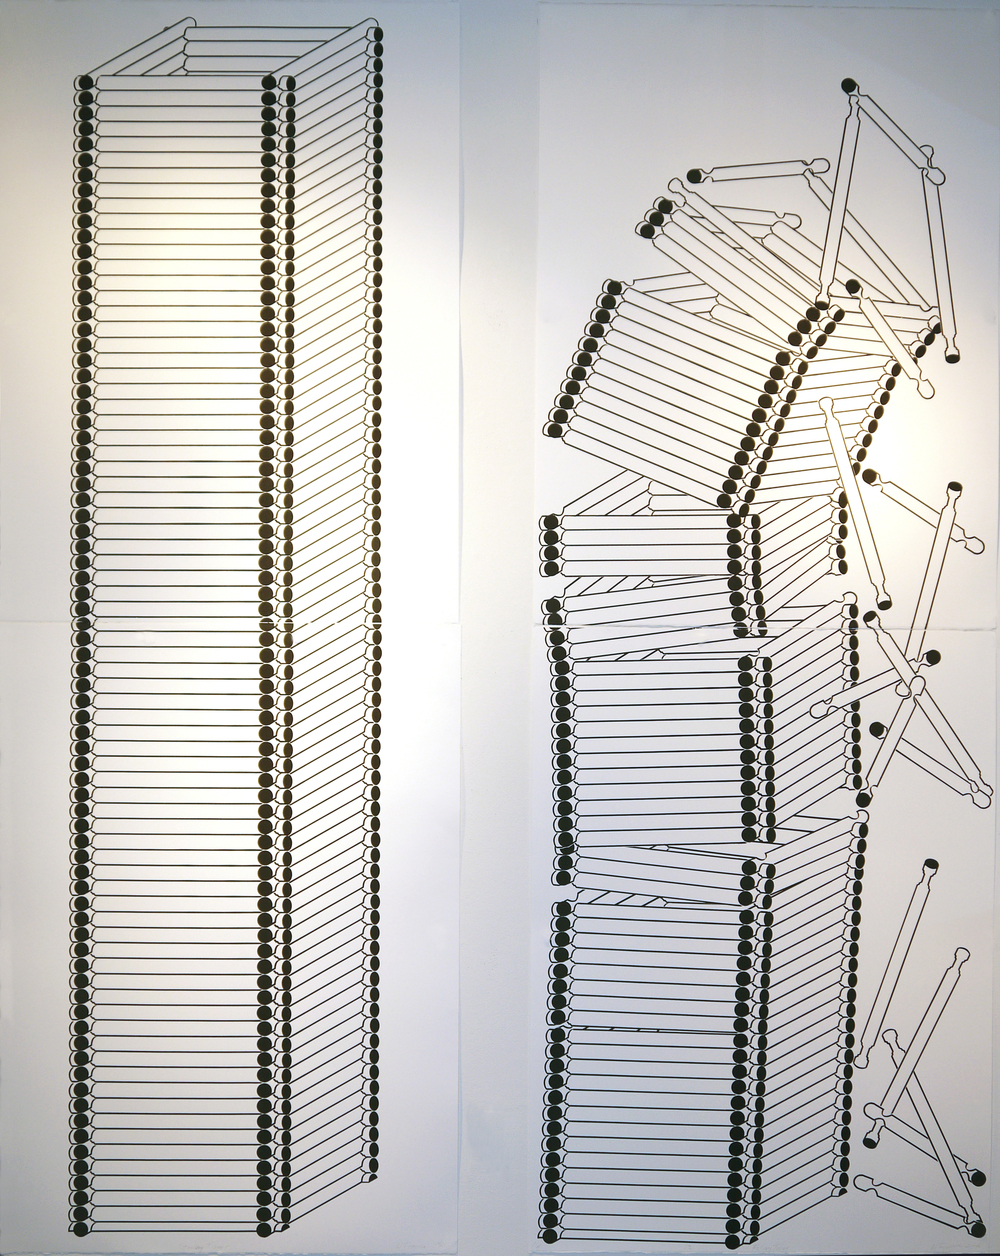 """Standing Tower Falling Tower, 2015, screenprint diptych, ea image 35"""" x 7' 10"""""""